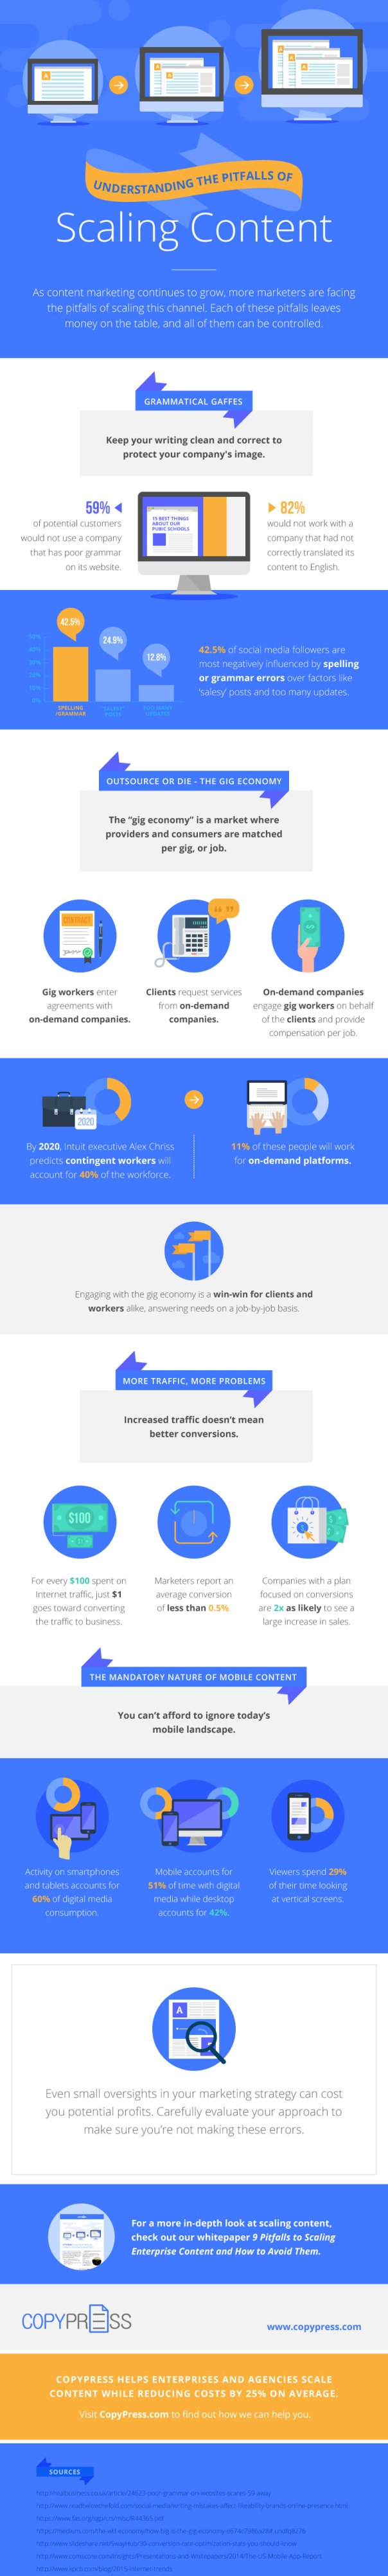 How to Maximize Your Creative Process at Scale [Infographic]